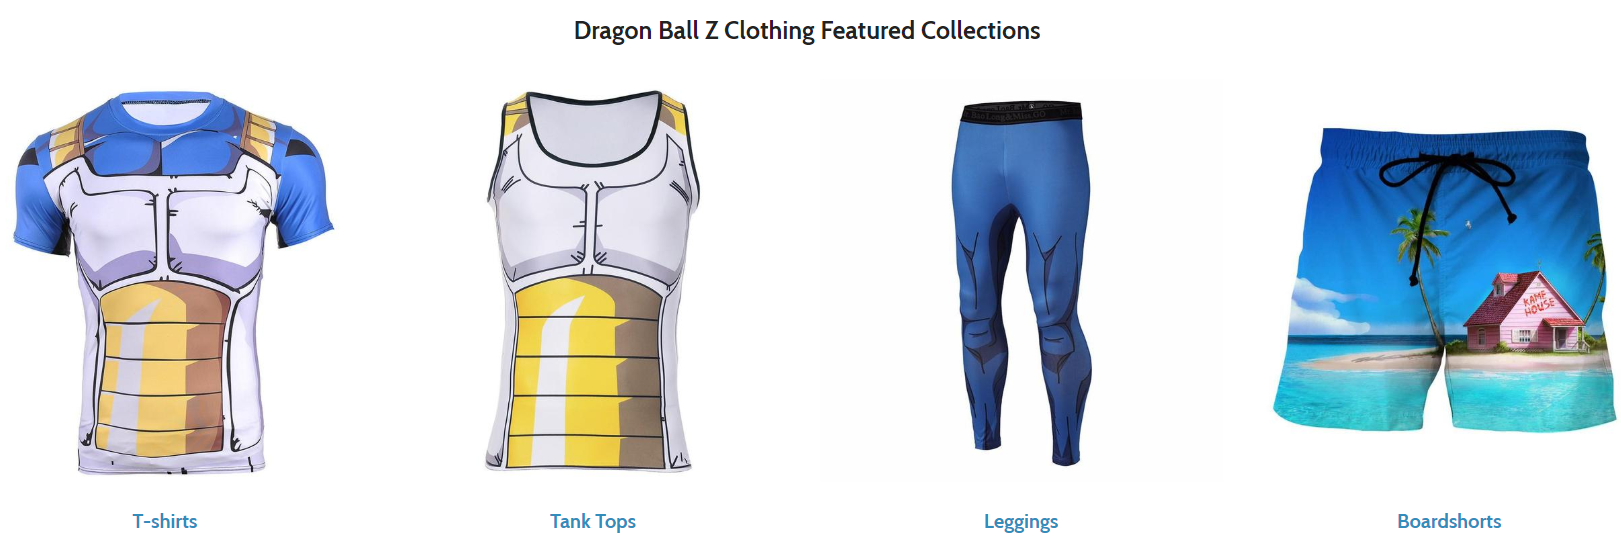 What is The Best Website to Shop Dragon Ball Z Clothing Online?